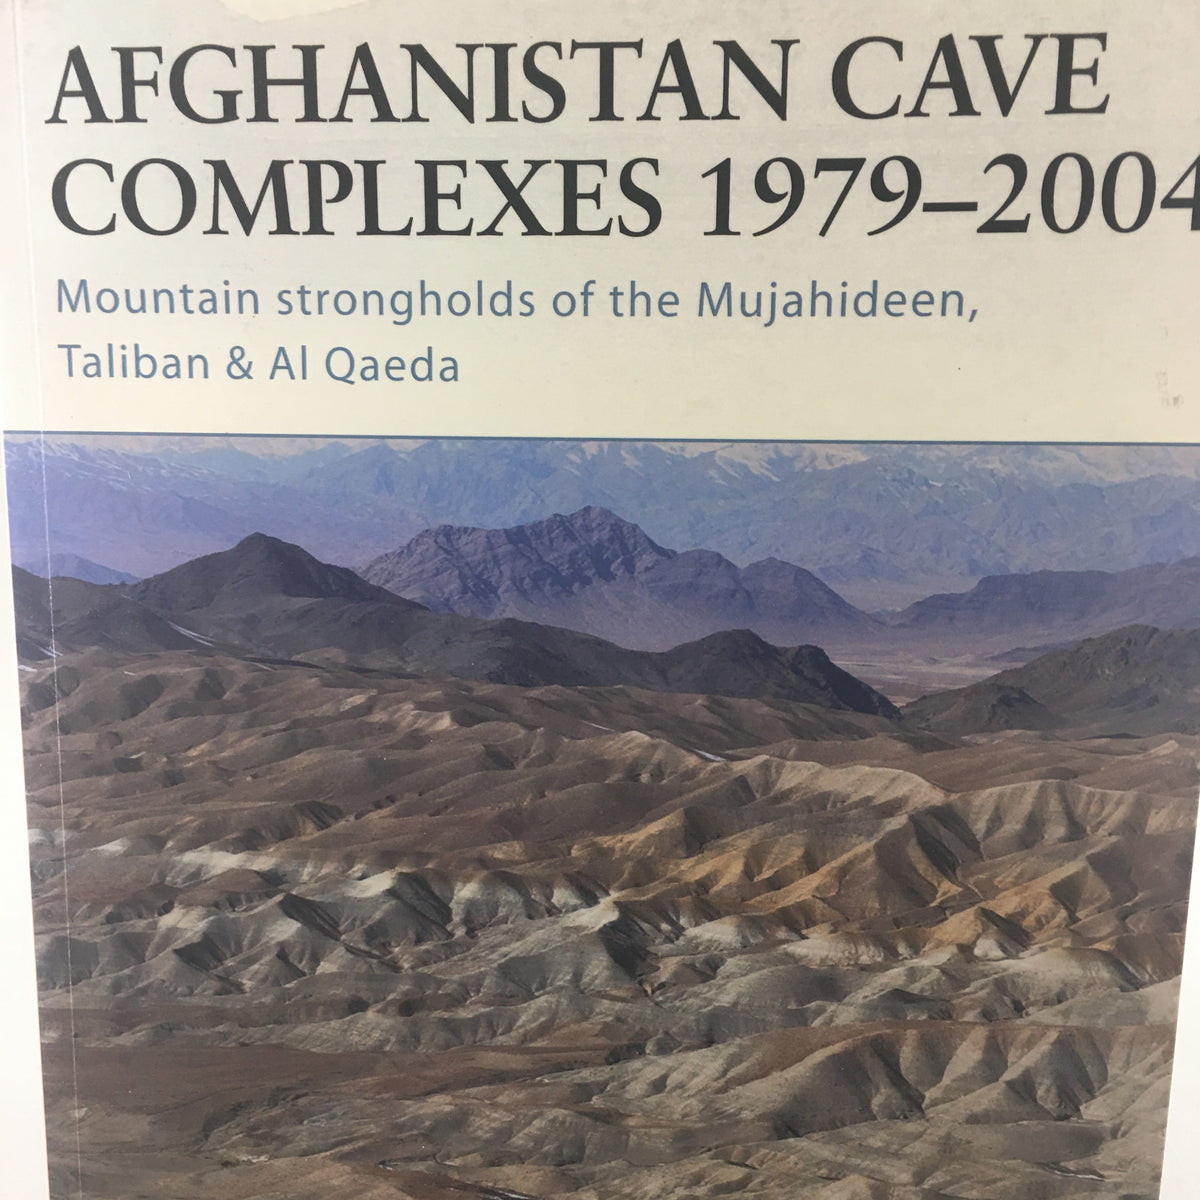 Afghanistan Cave Complexes 1979 - 2004: Mountain Strongholds of the Mujahideen, Taliban & Al Qaeda